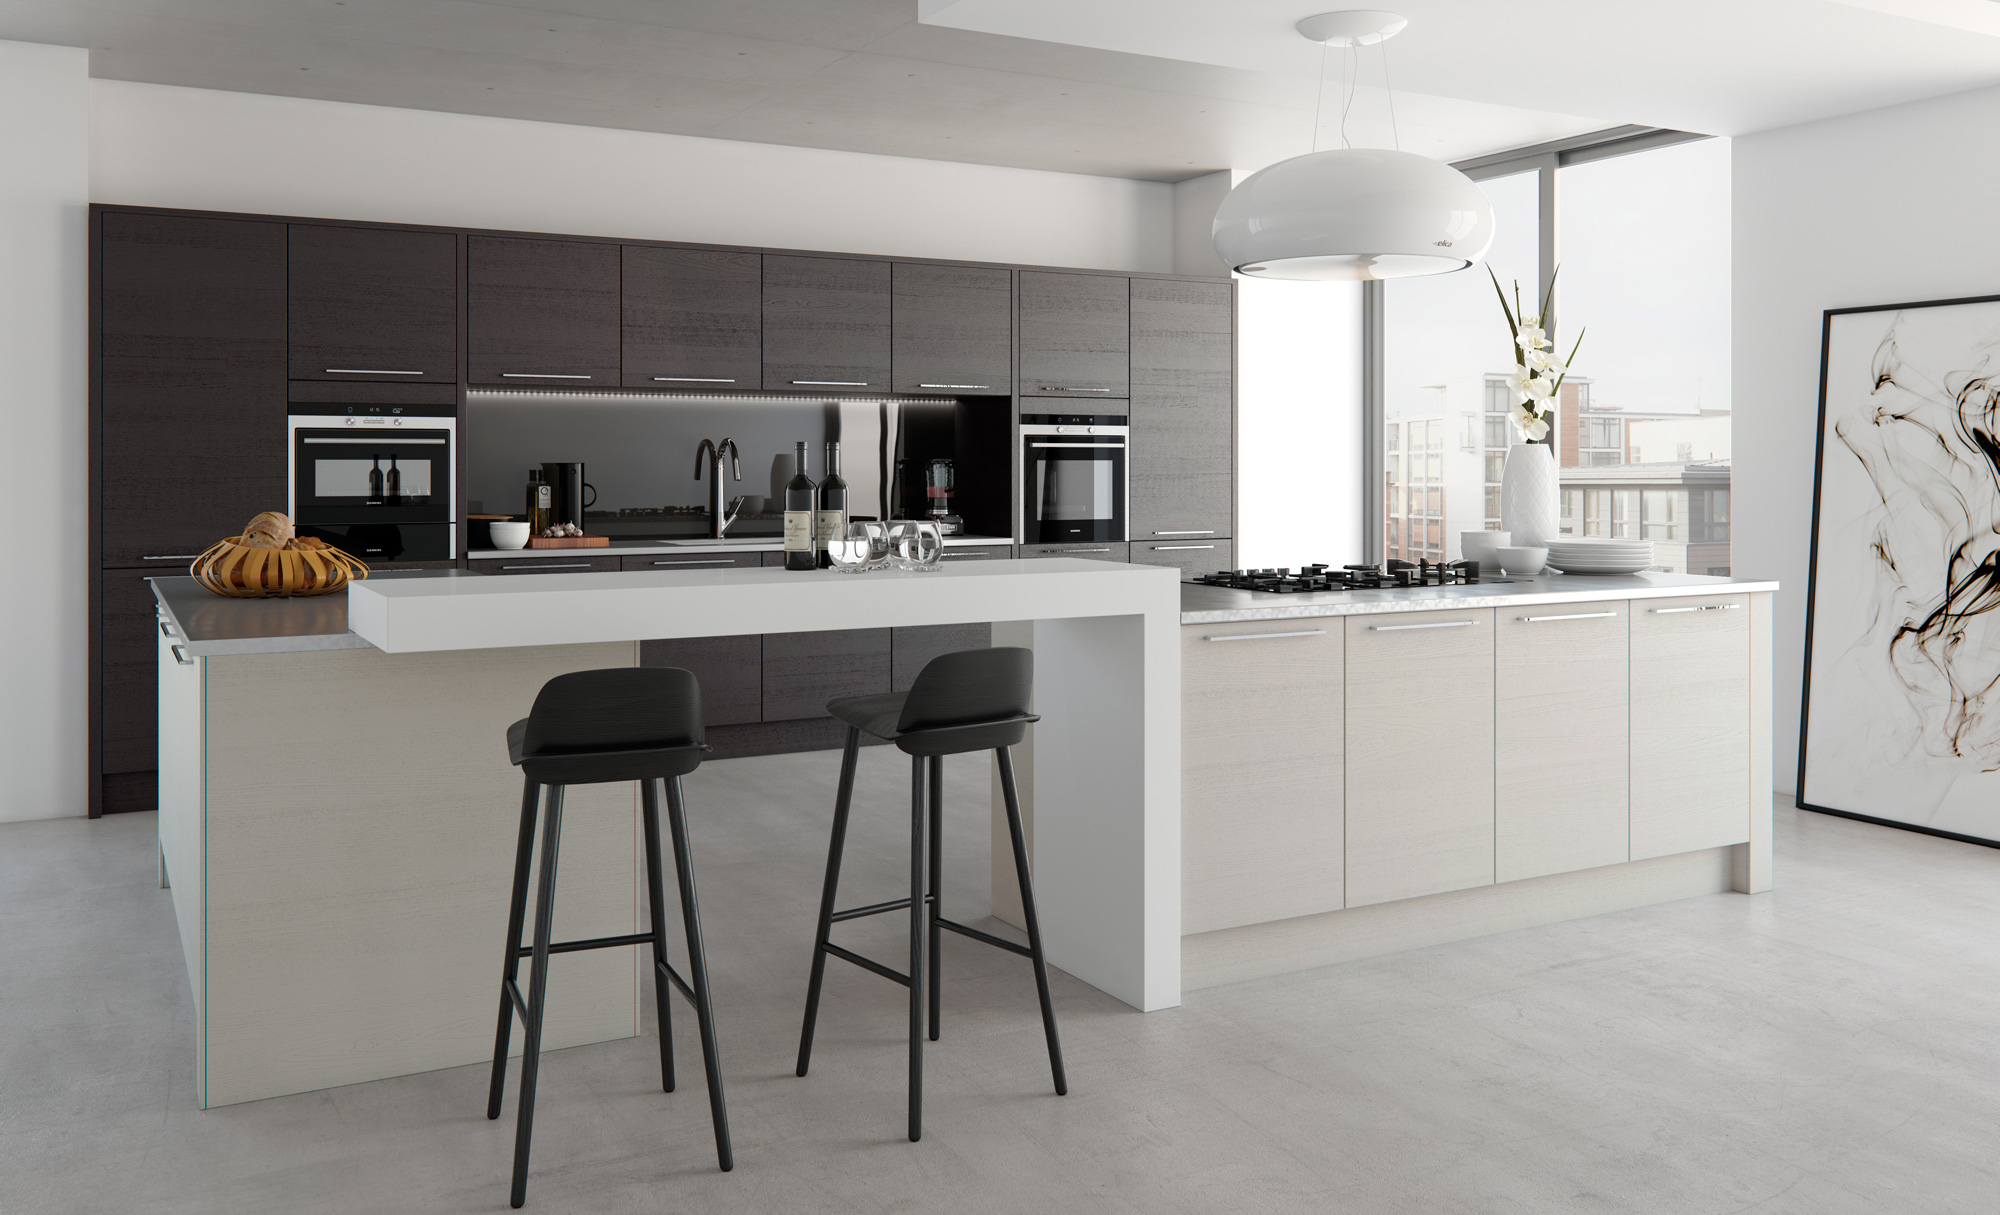 Tavola Kitchen in Stained Hacienda Black and Painted Light Grey